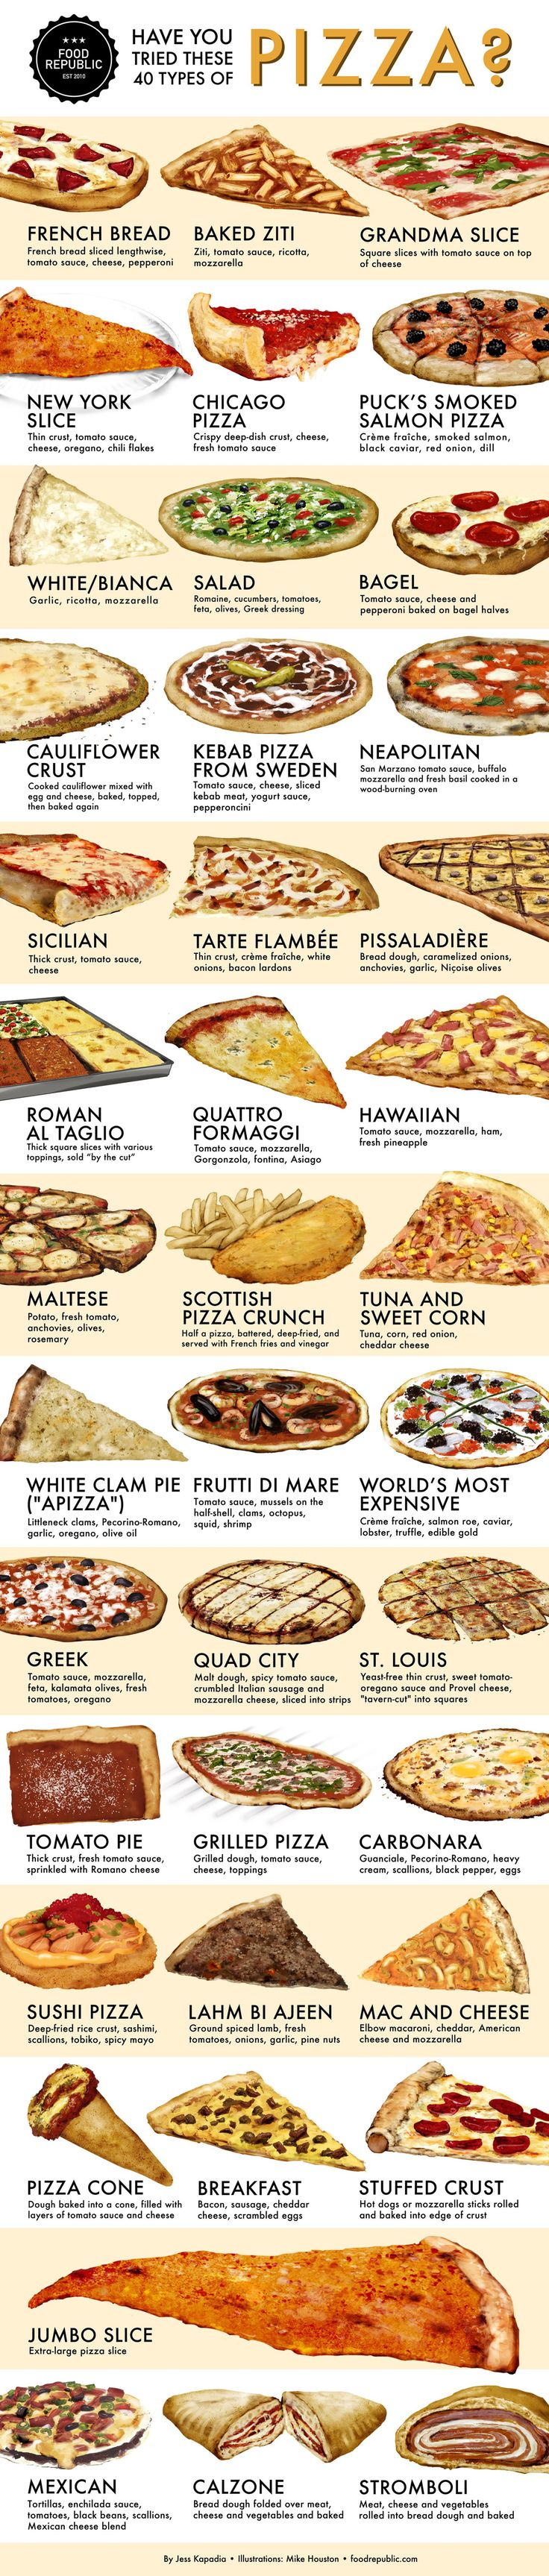 Welcome to Pizzaland, home of 40 distinct kinds of pizza! Some you'll know quite well, some are regional specialties (shoutouts to New Haven, St. Louis and